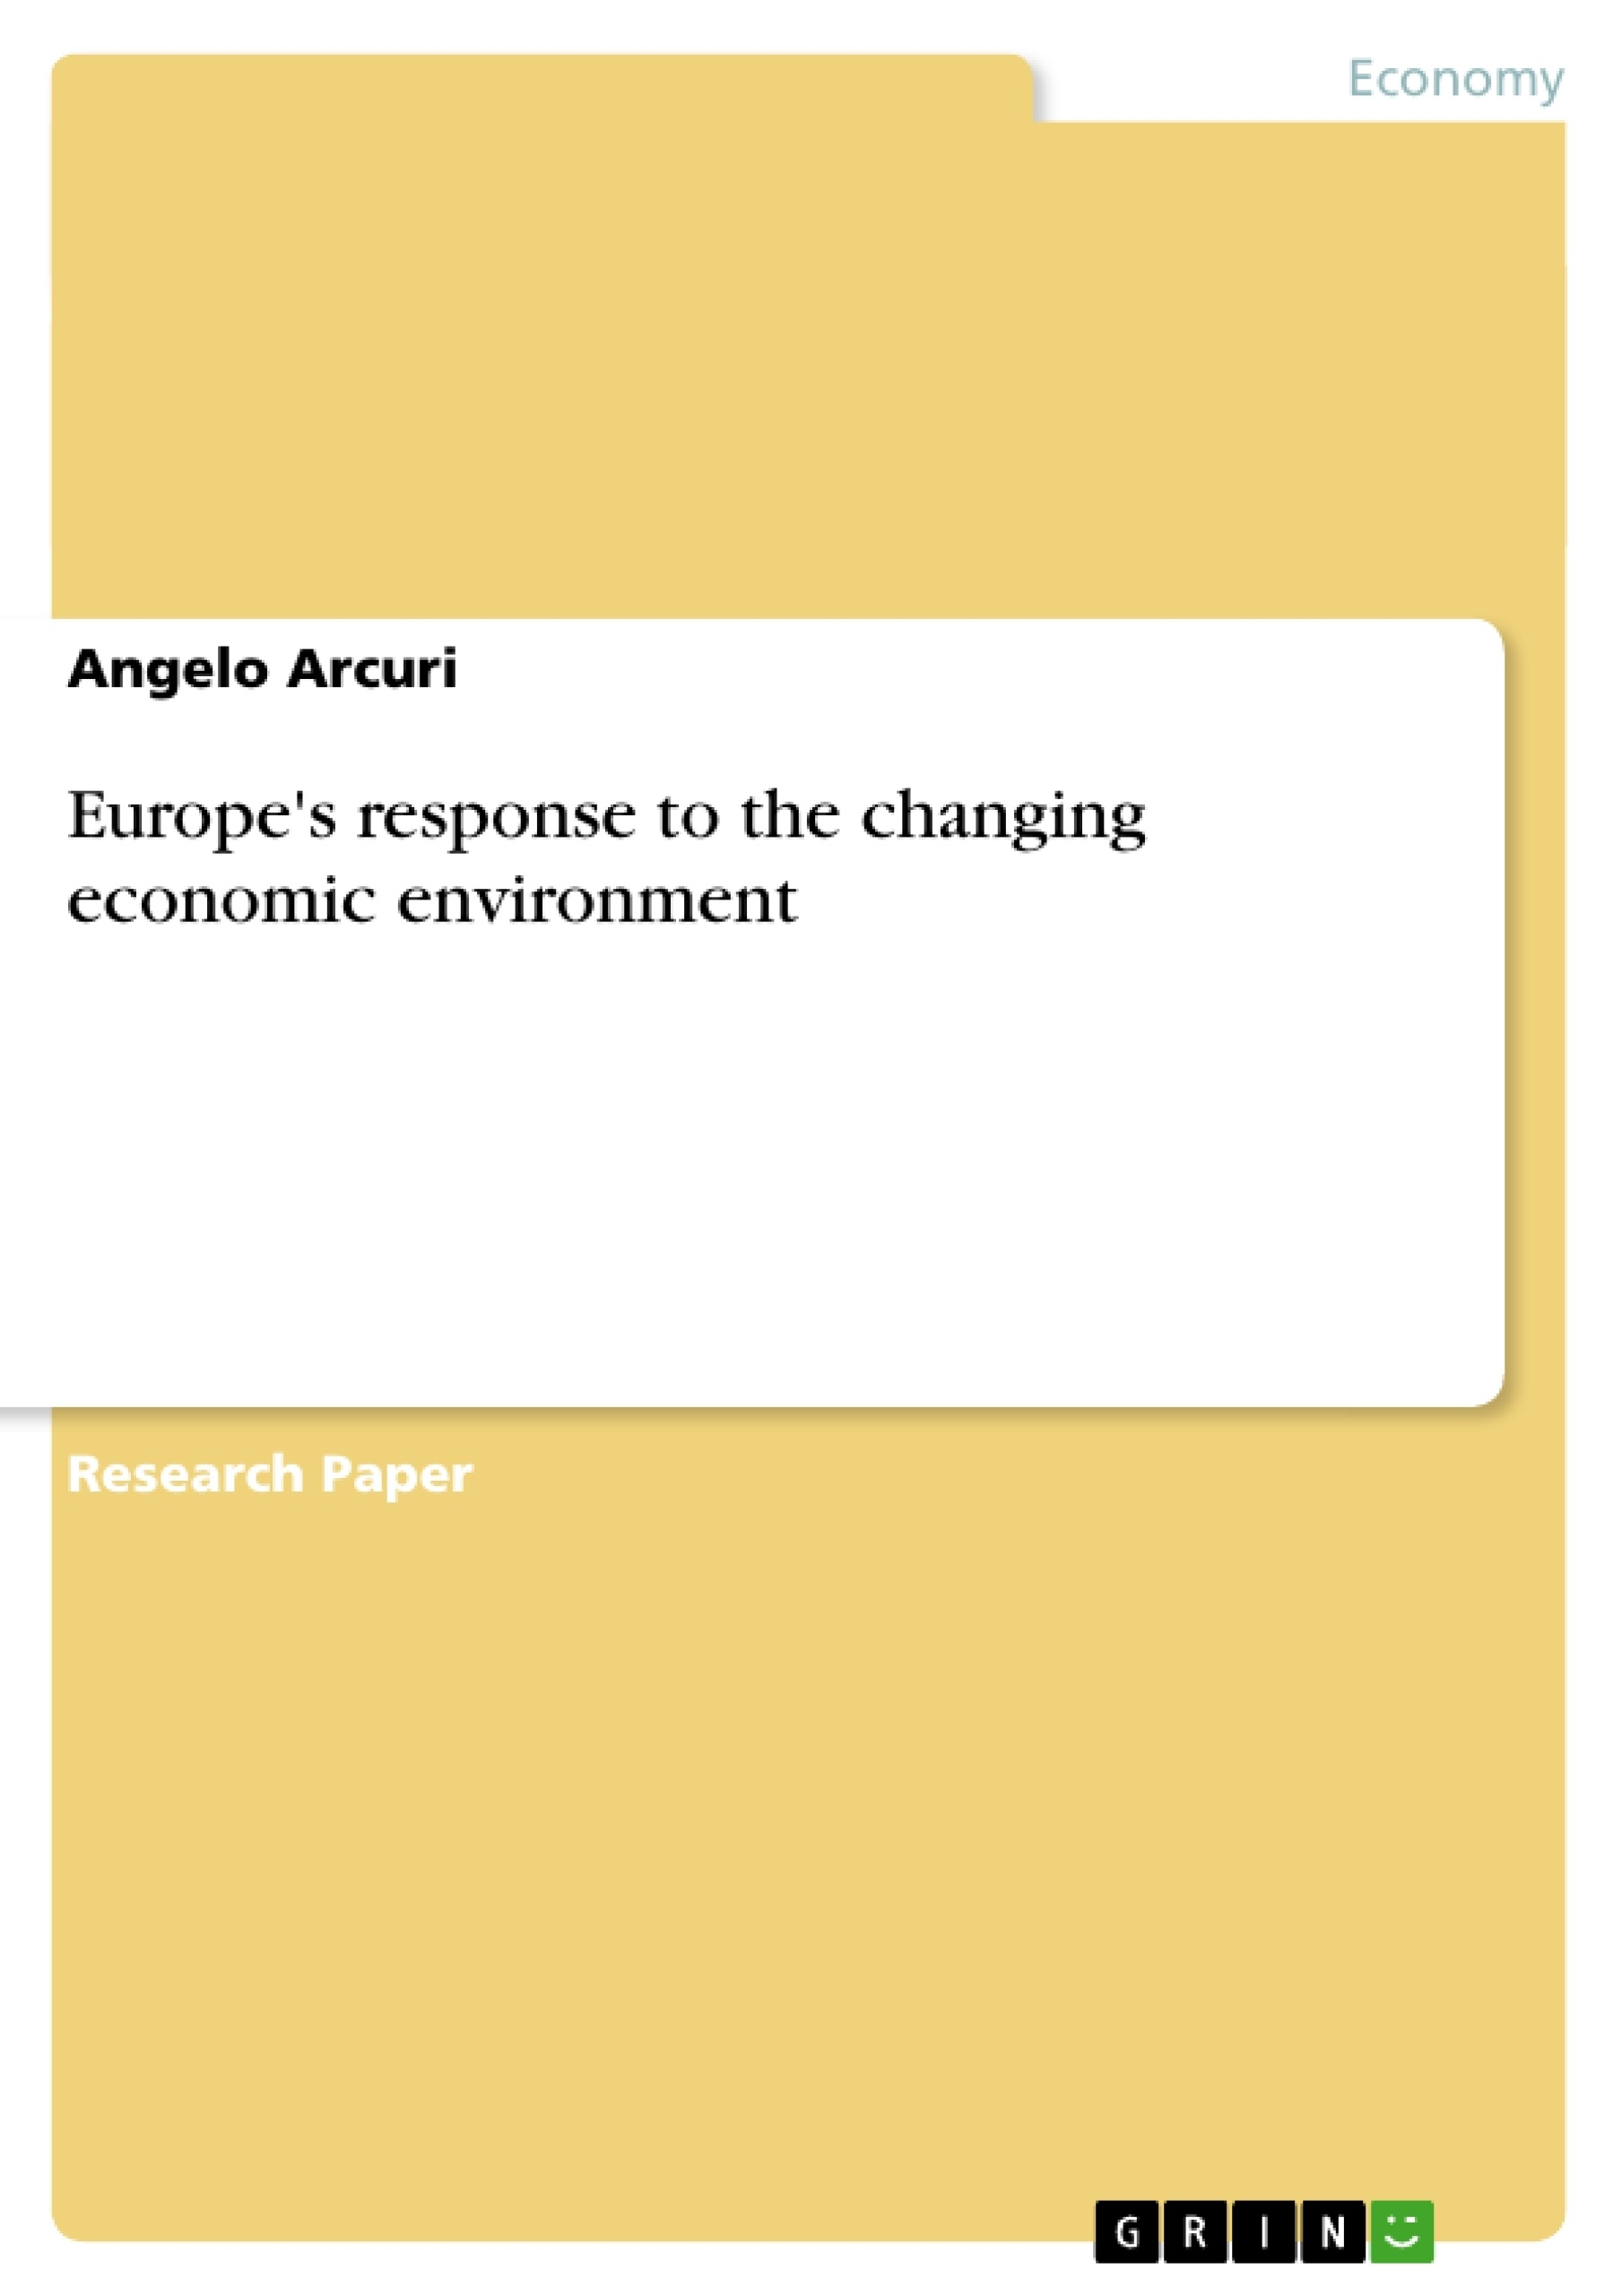 Title: Europe's response to the changing economic environment